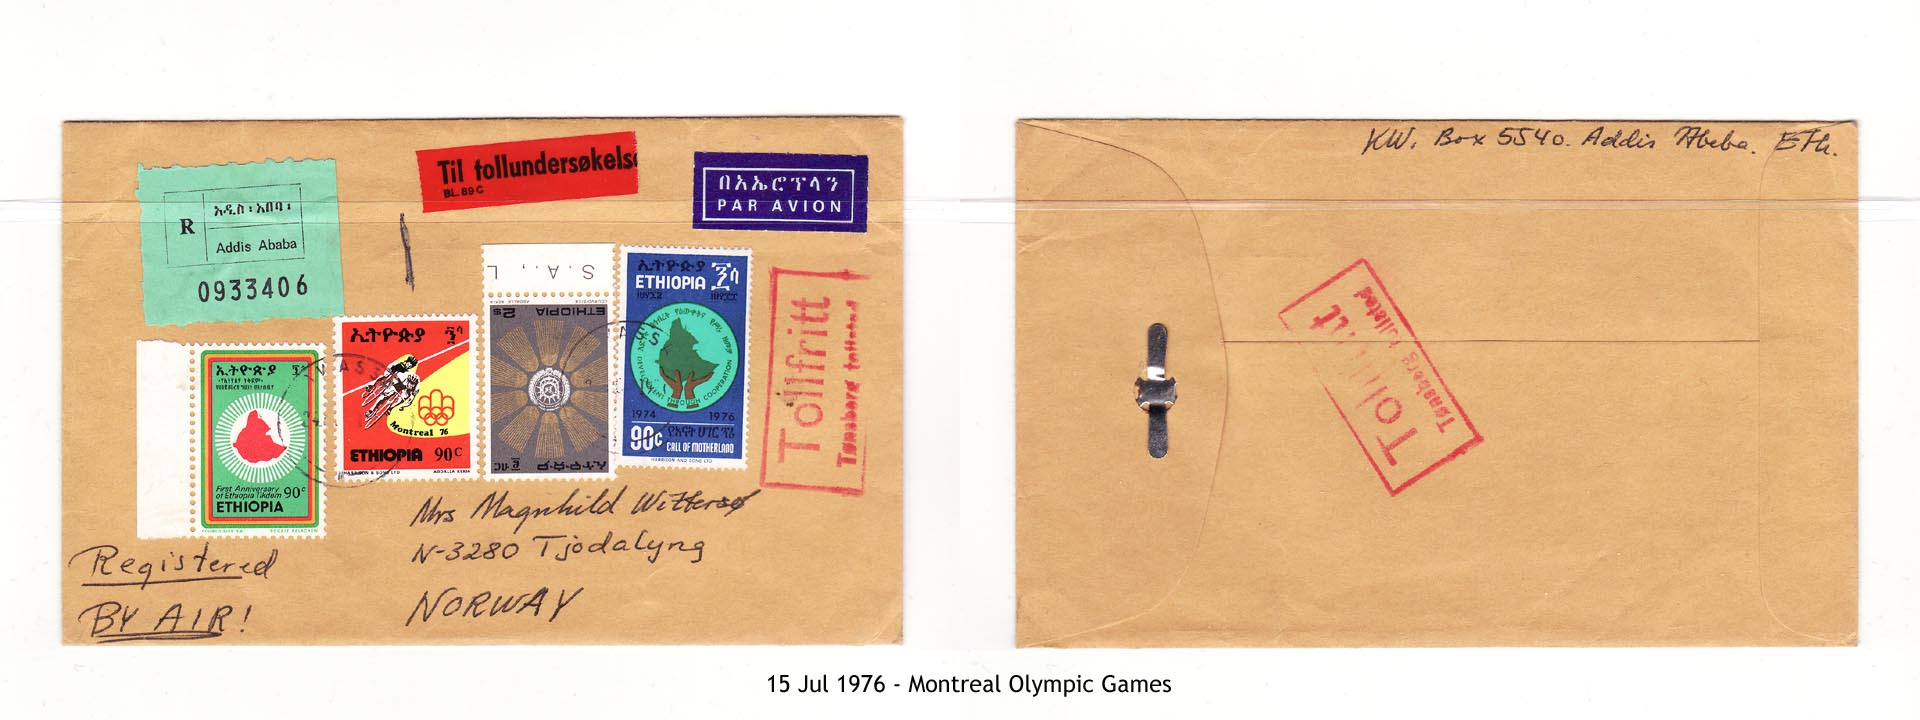 19760715 - Montreal Olympic Games